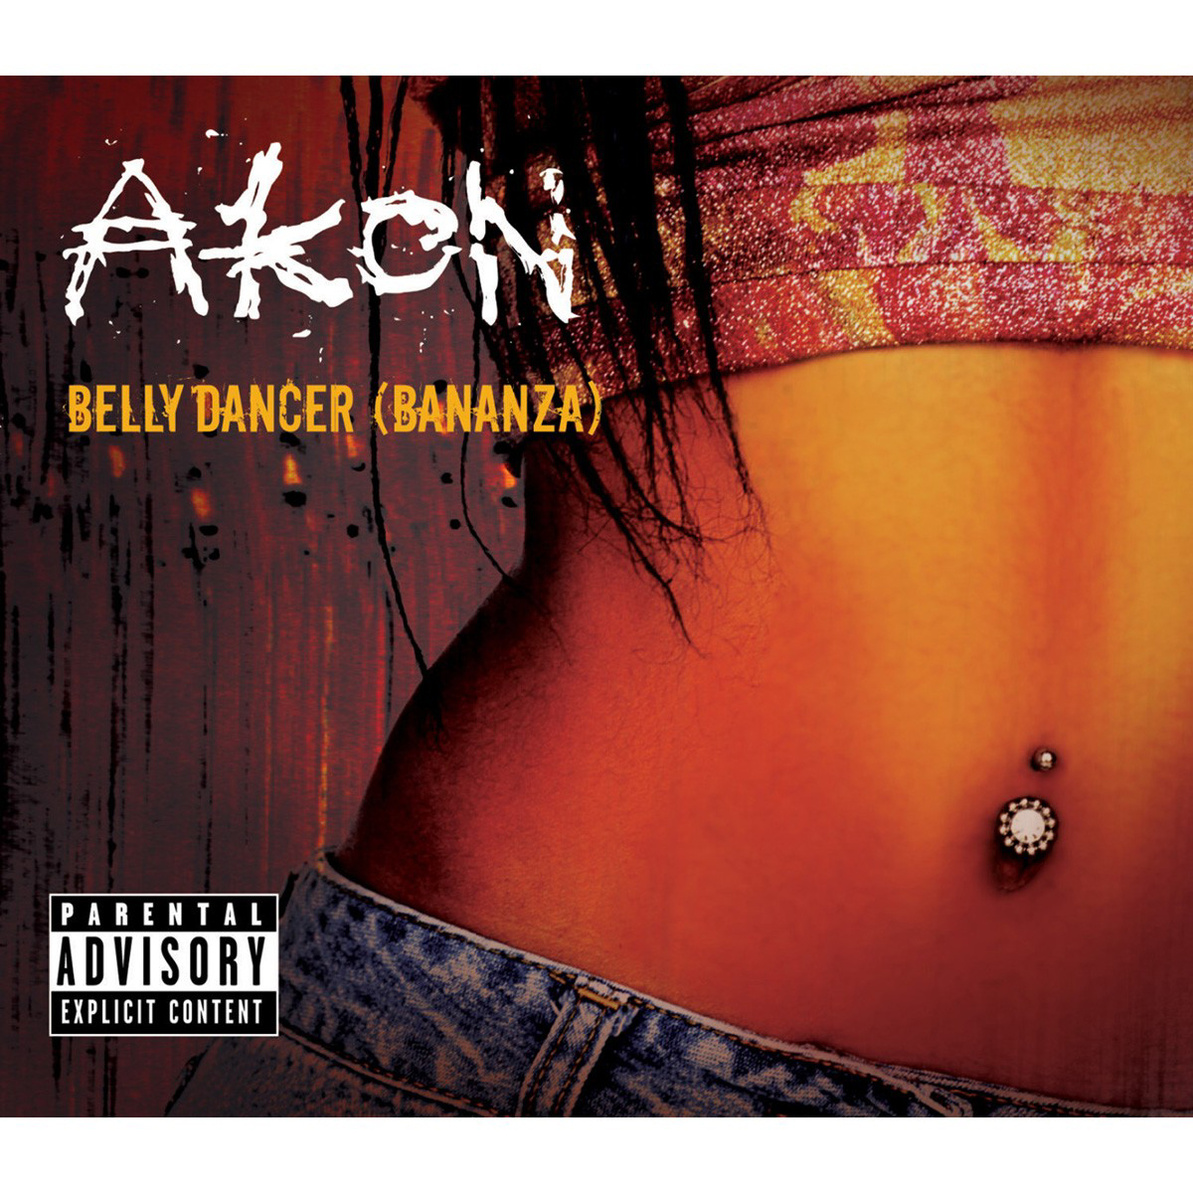 Akon - Belly Dancer (Bananza) / 2-Track